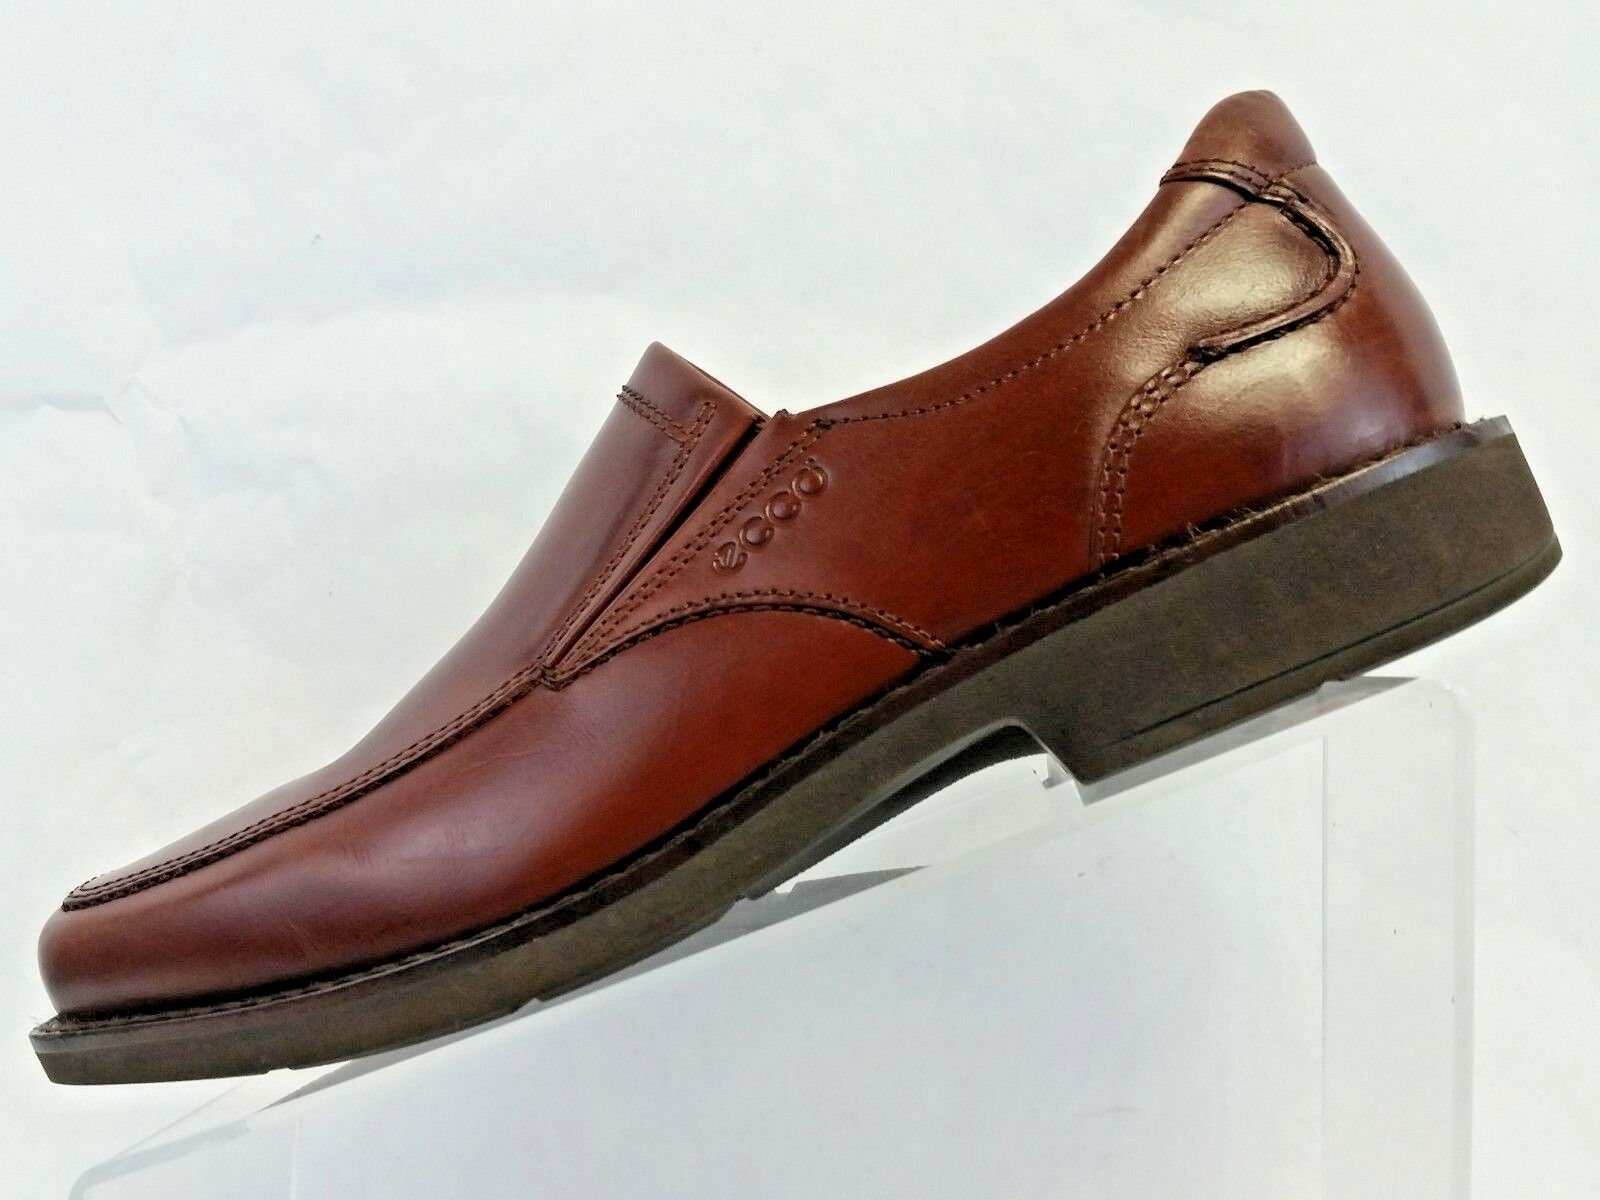 Ecco Men Dress shoes Brown Leather Apron Toe Slip On Loafer US size 8.5 Ex Wide